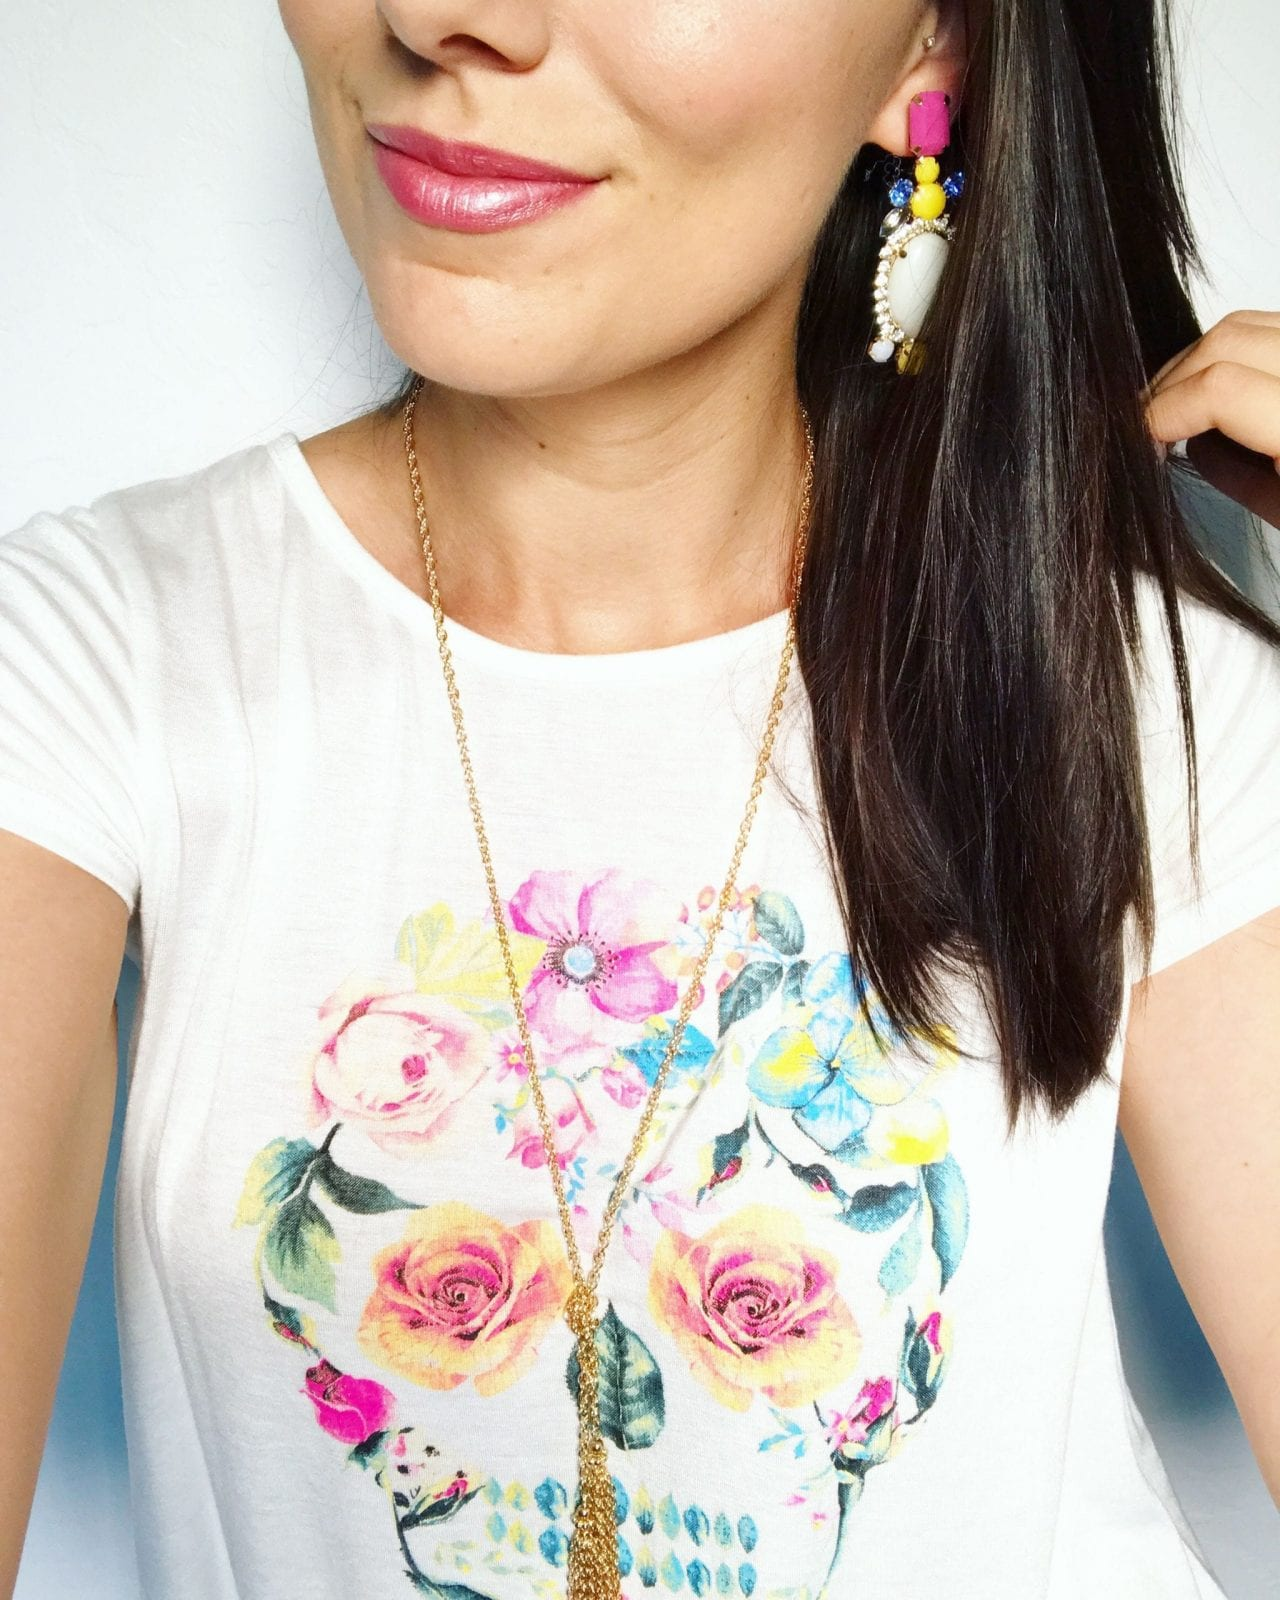 Wearing 7 Charming Sisters Jewelry